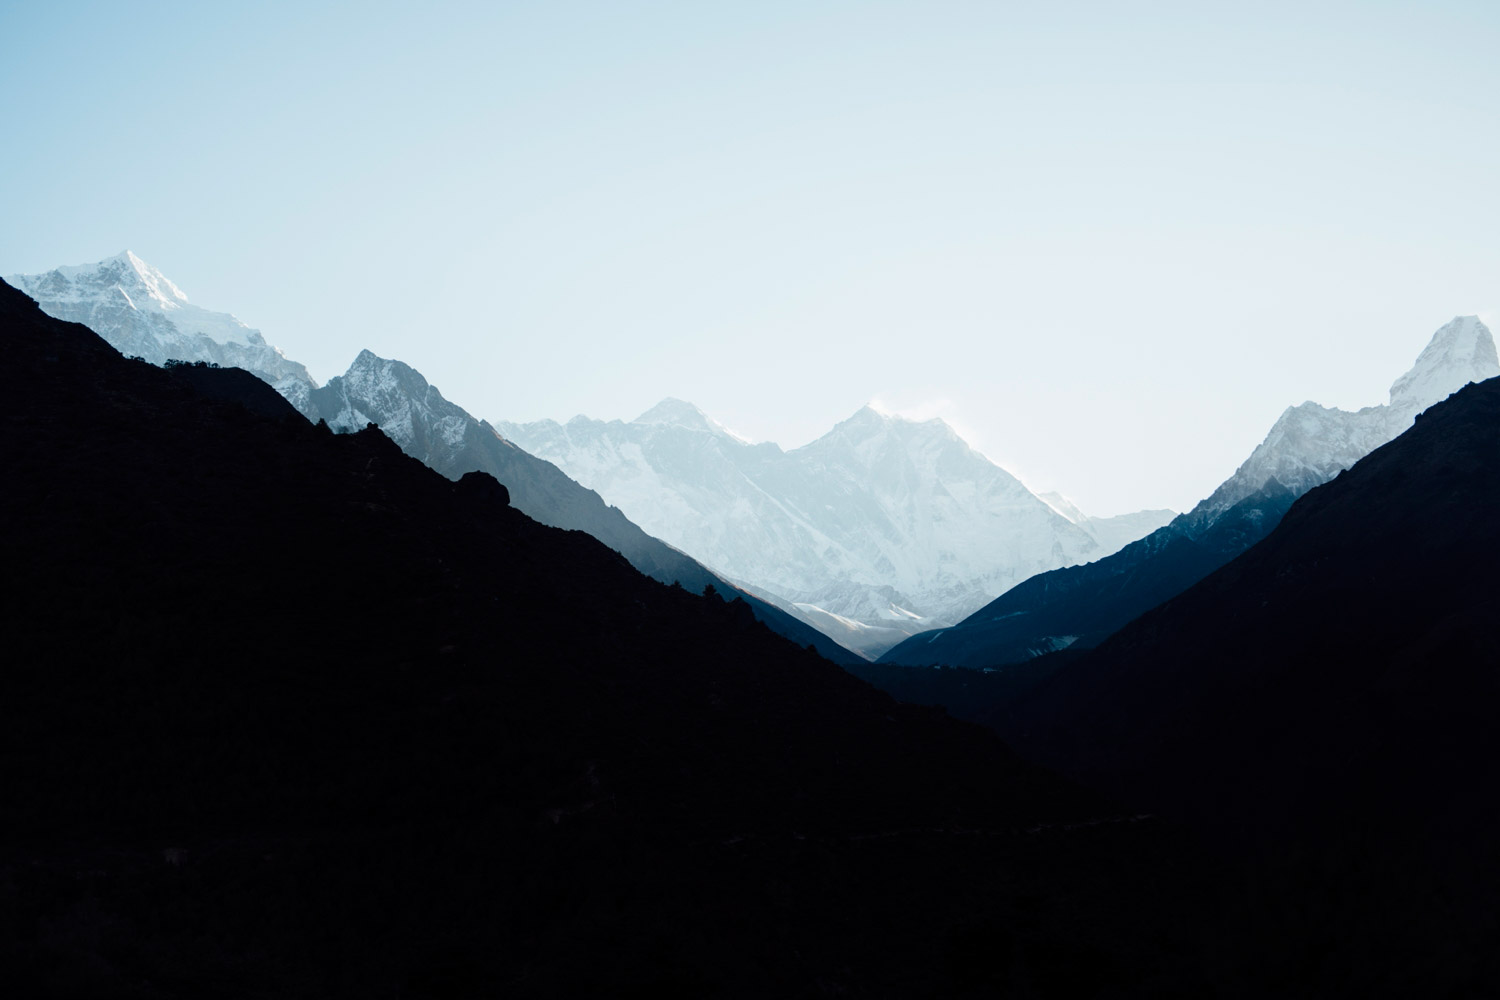 Katie_Mitchell_Photography_Travel_Photography_Everest_Nepal_04.jpg